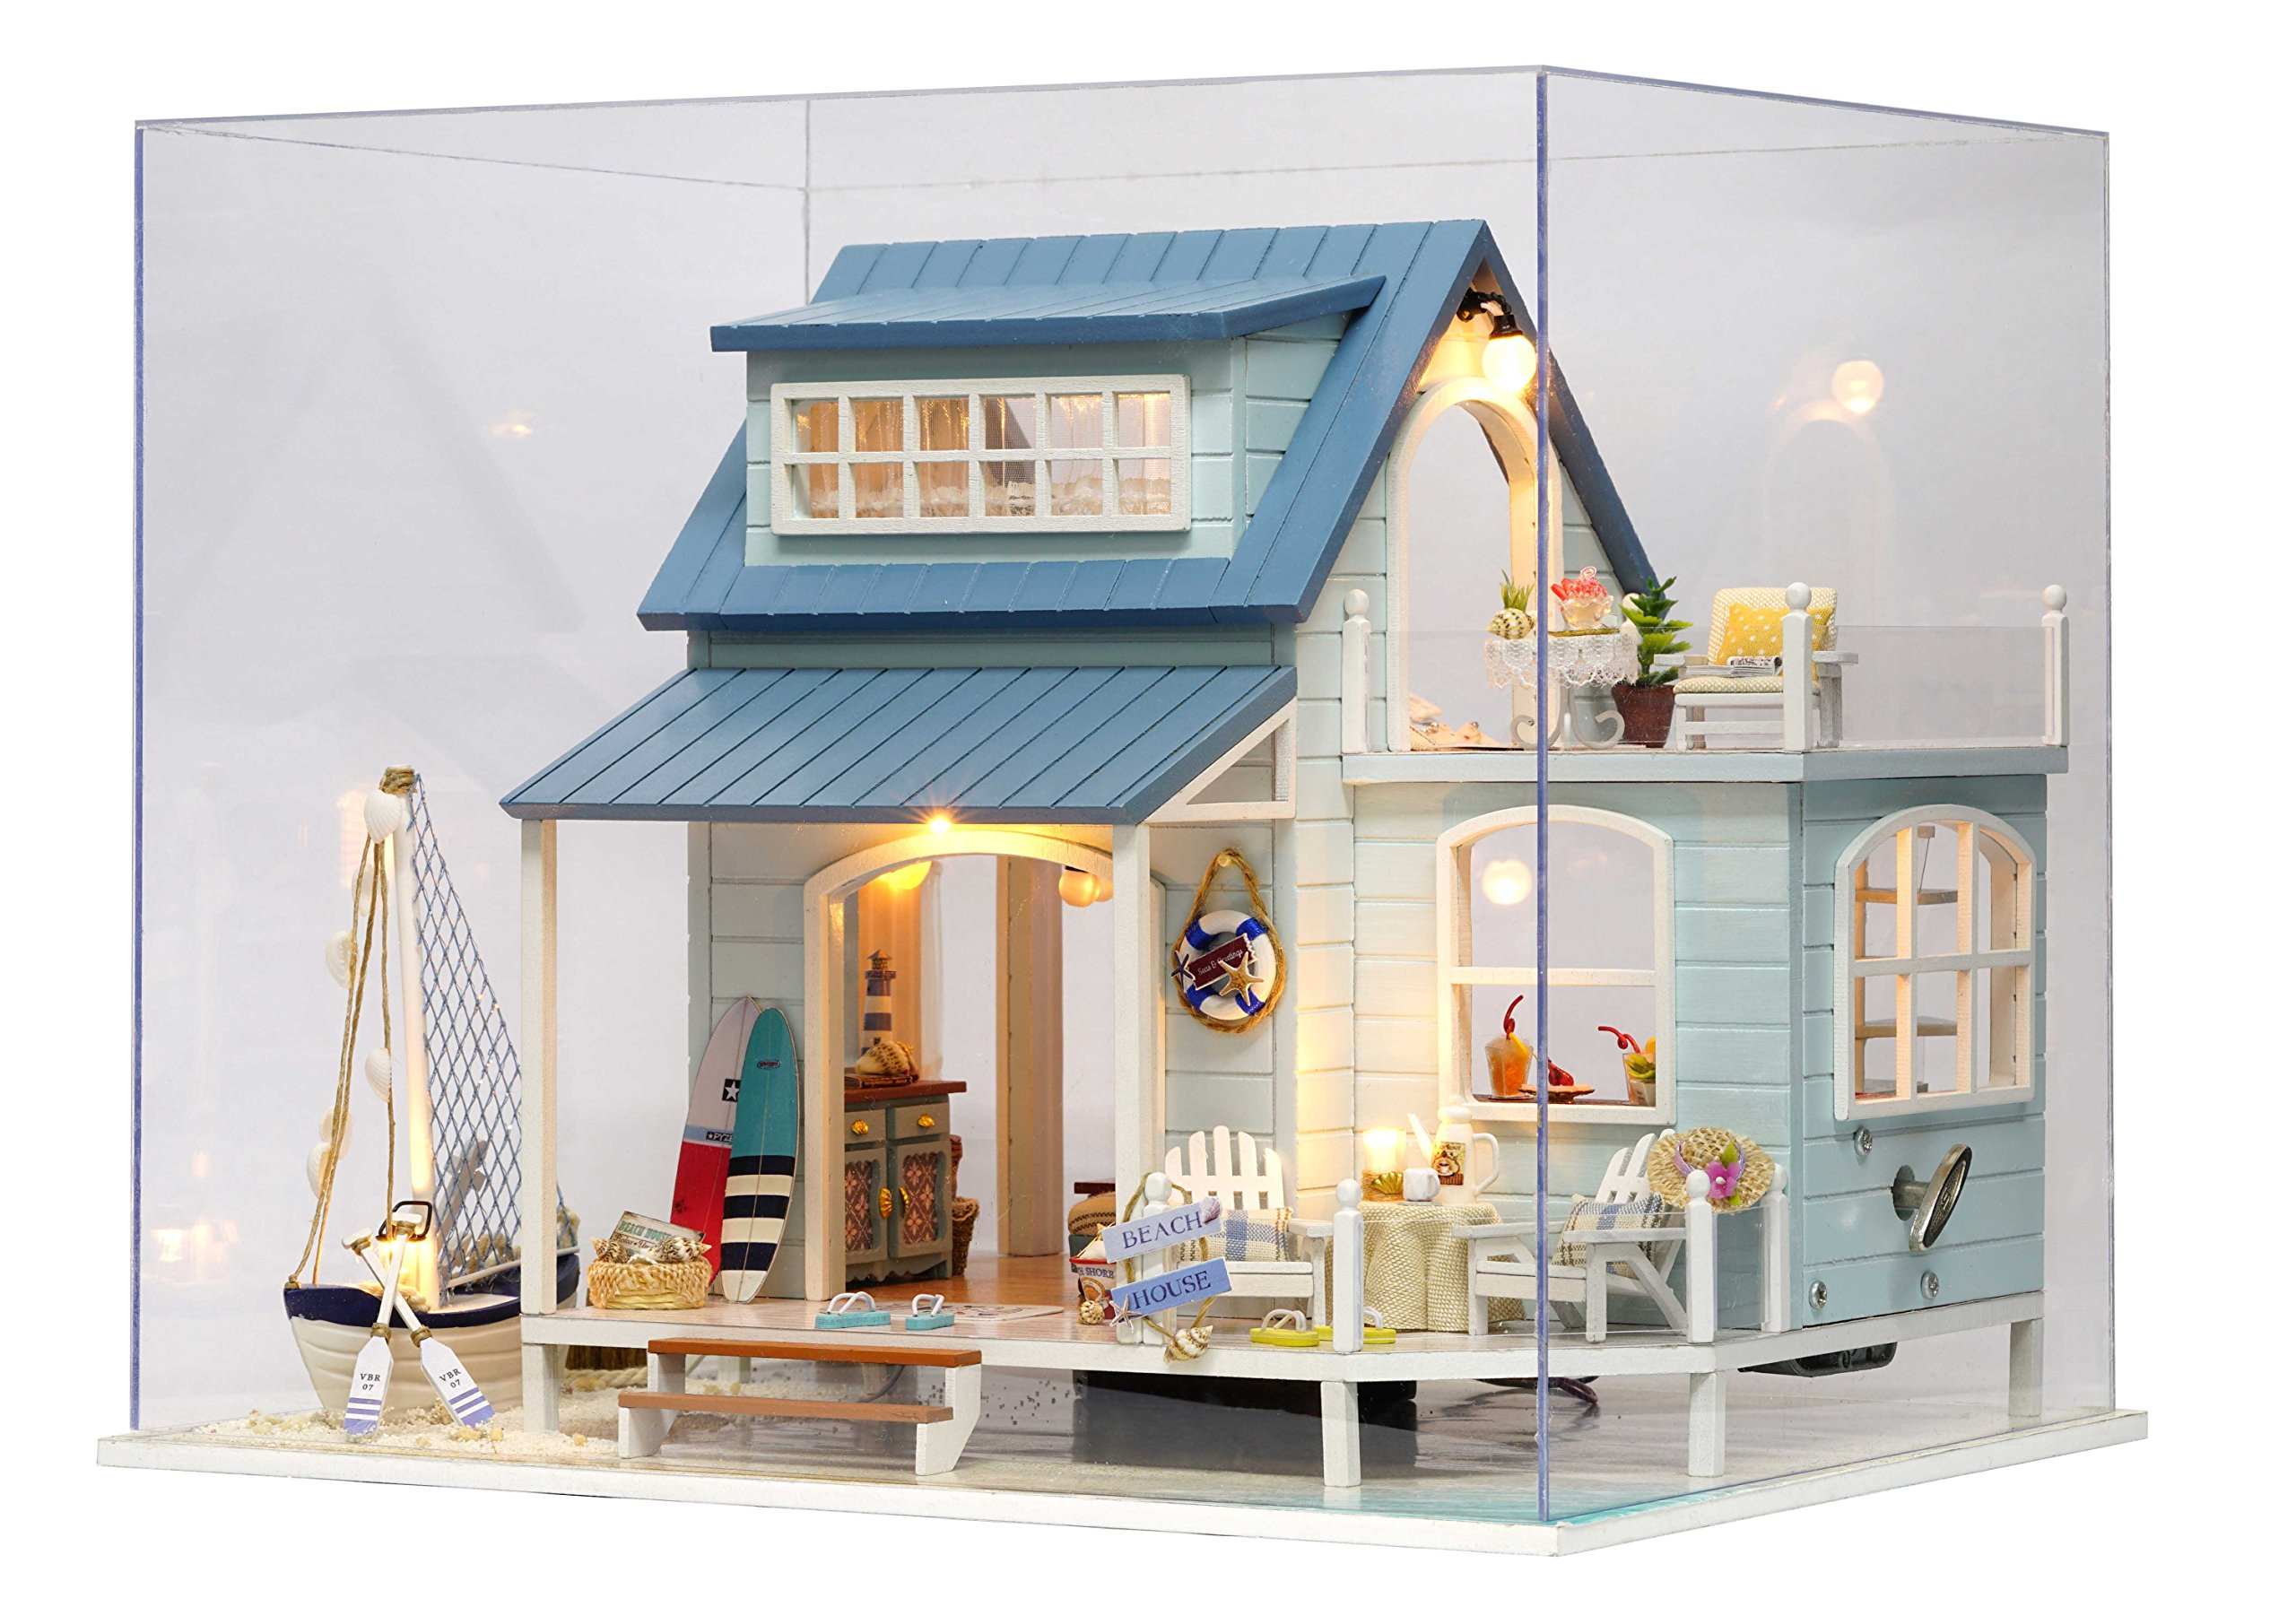 Flever Dollhouse Miniature DIY Musical House Kit Creative Room With Furniture for Romantic Valentine's Gift(Caribbean Captain)